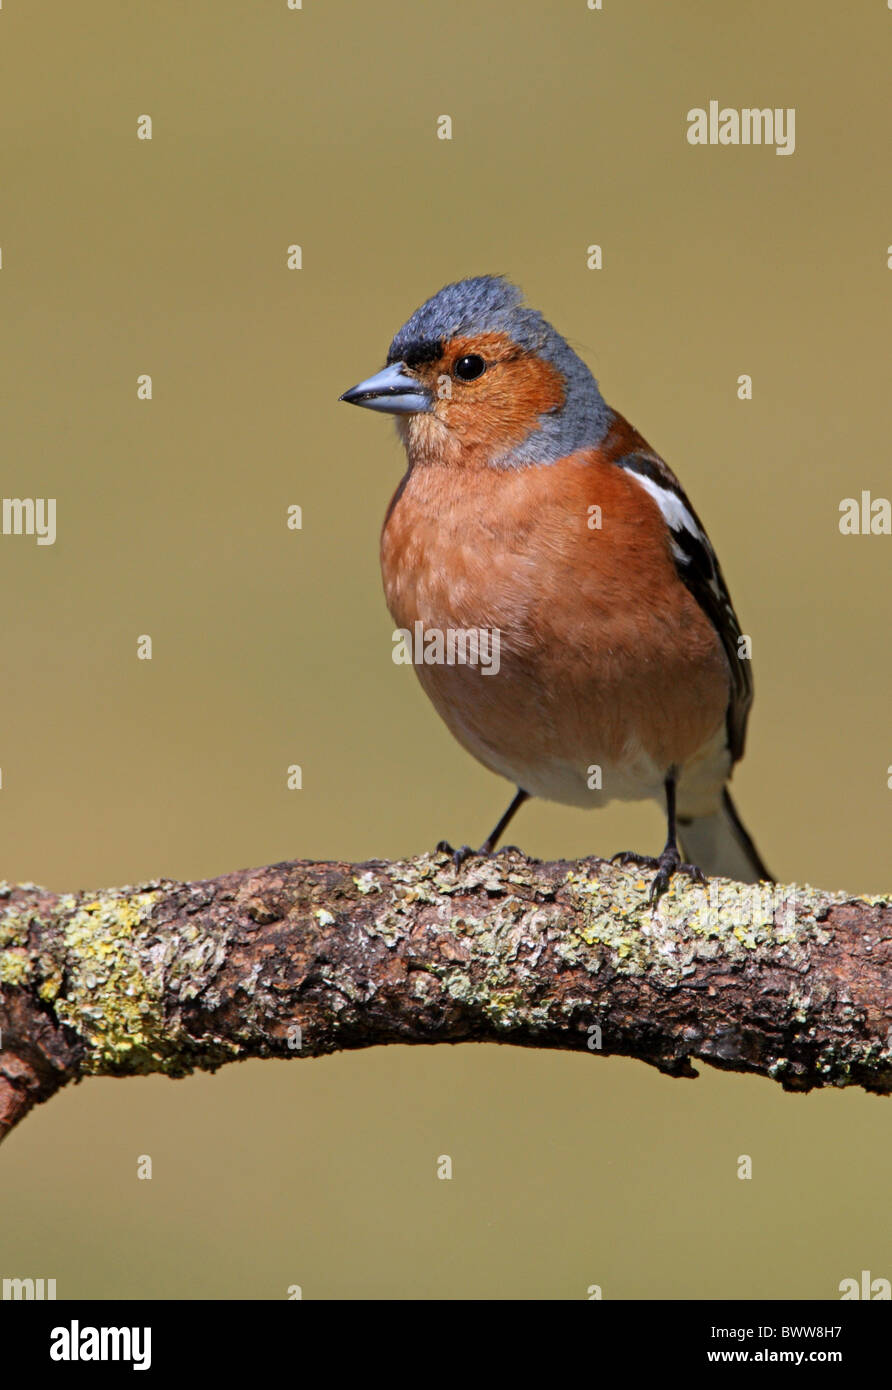 Chaffinch (Fringilla coelebs) adult male, perched on branch, Norfolk, England, april - Stock Image